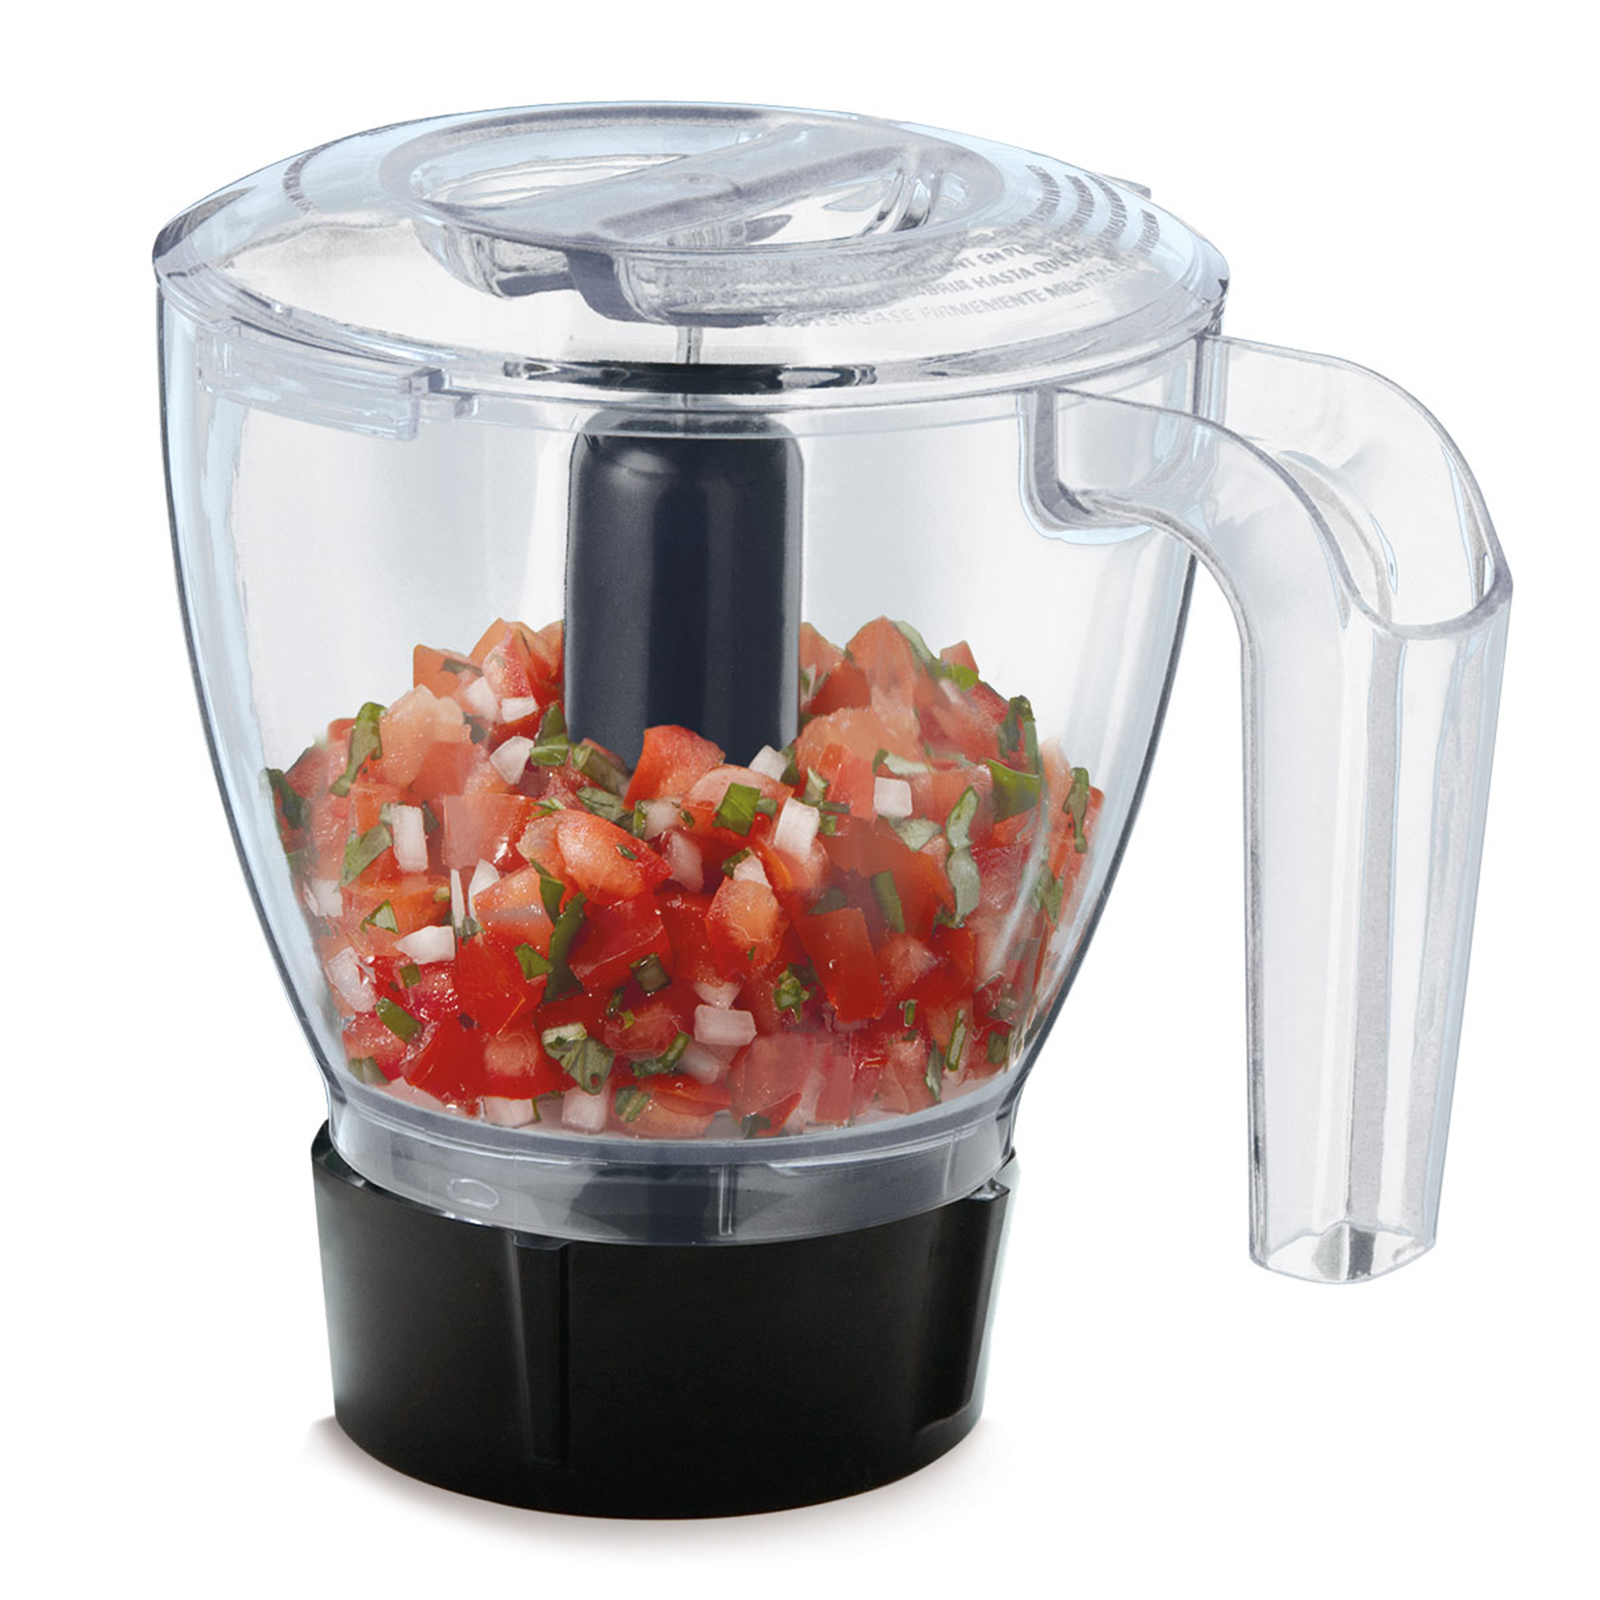 Oster 12-Speed Blender PLUS 3-Cup Food Processor